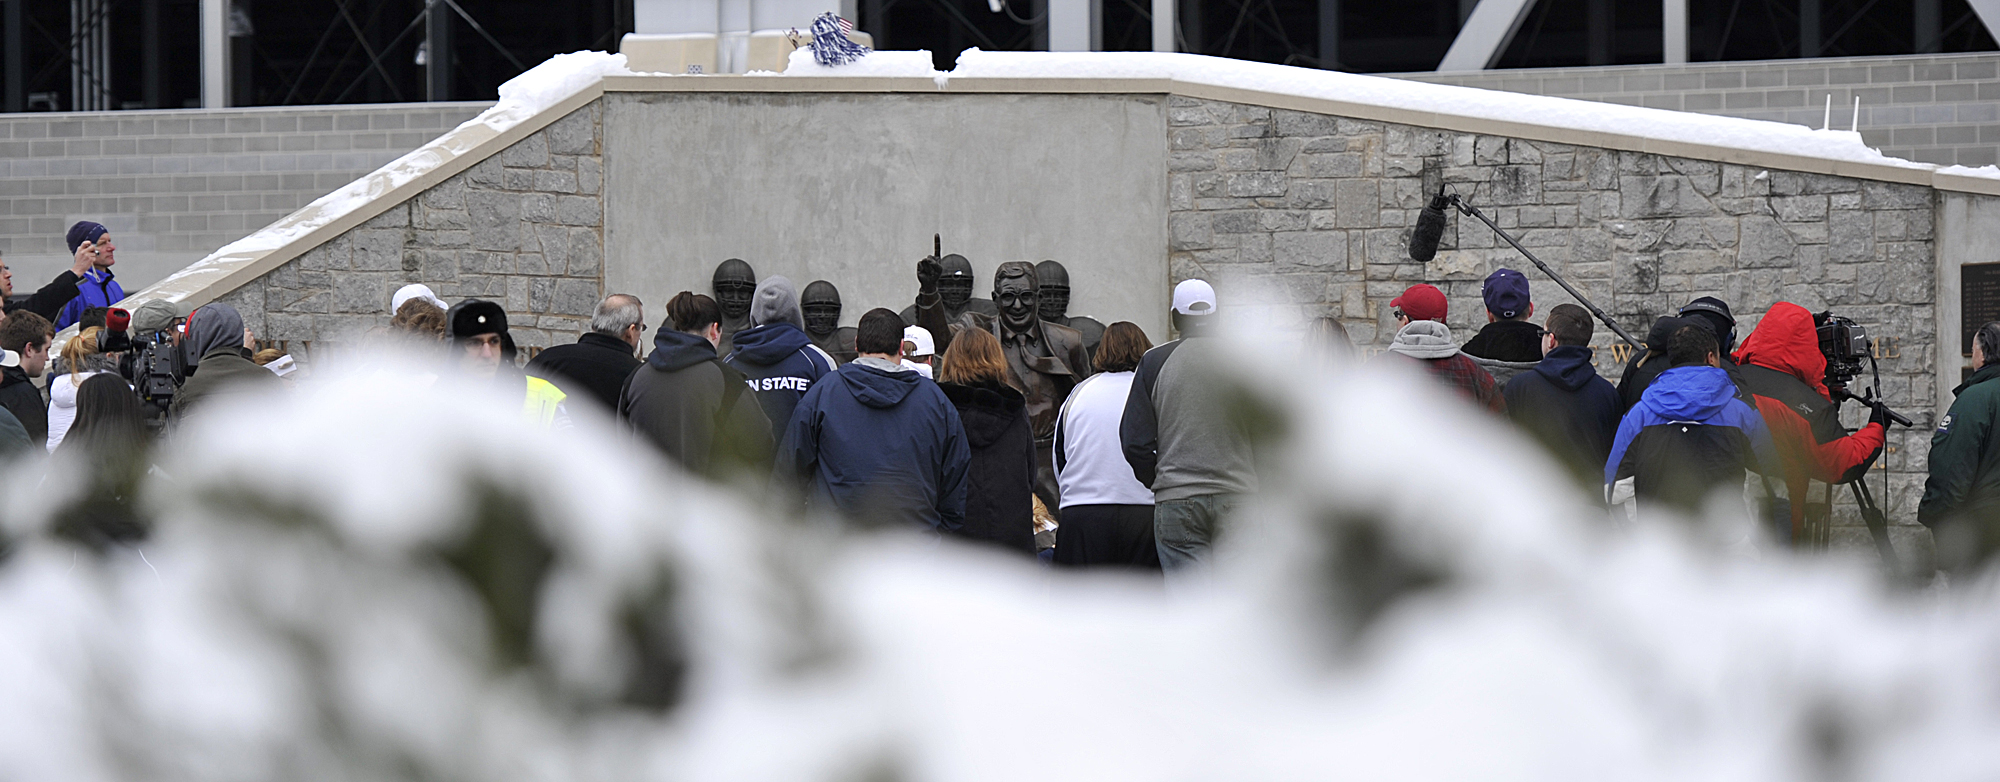 Crowds gather around the Joe Paterno Statue on Sunday, Jan. 22, 2012 after learning of his death due to complications with lung cancer.